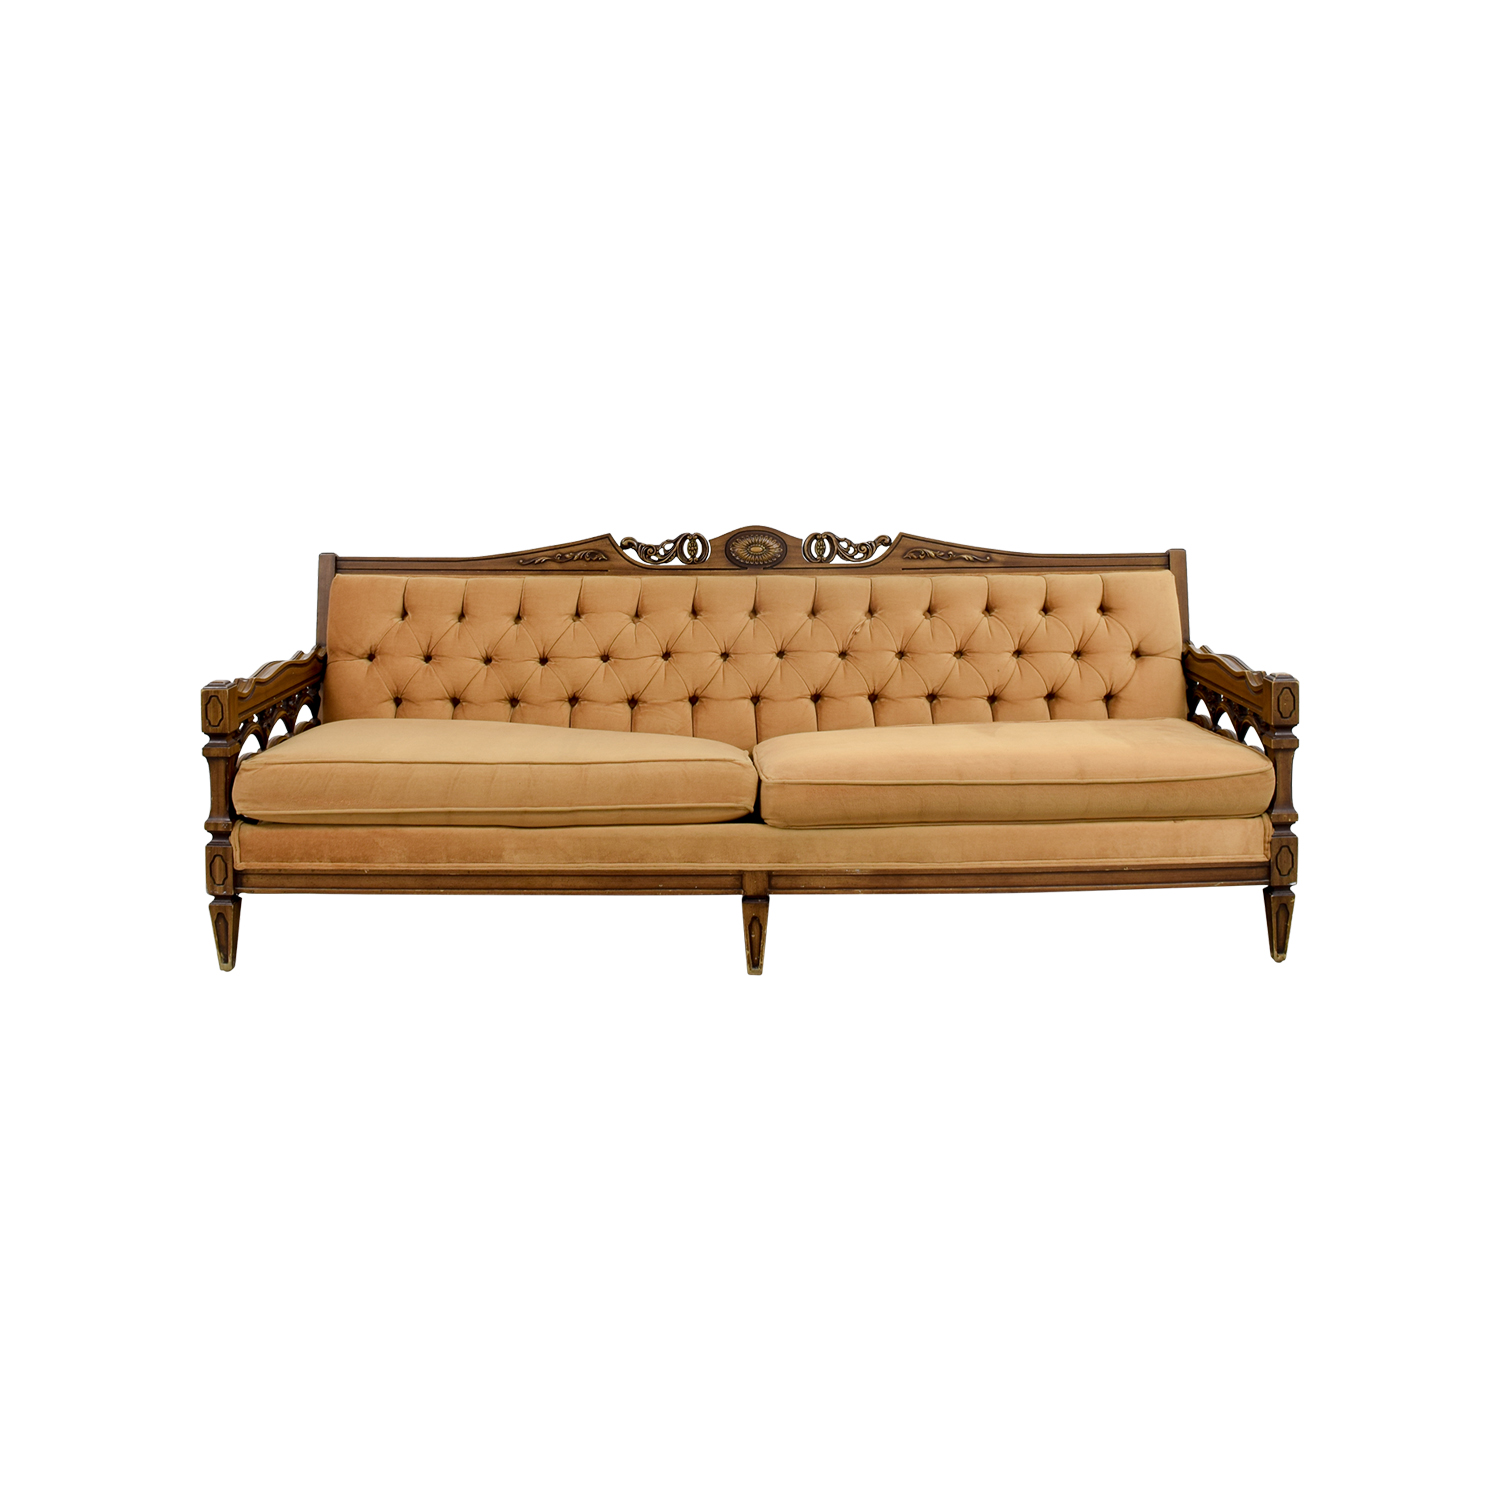 Vintage Tufted Beige Sofa used